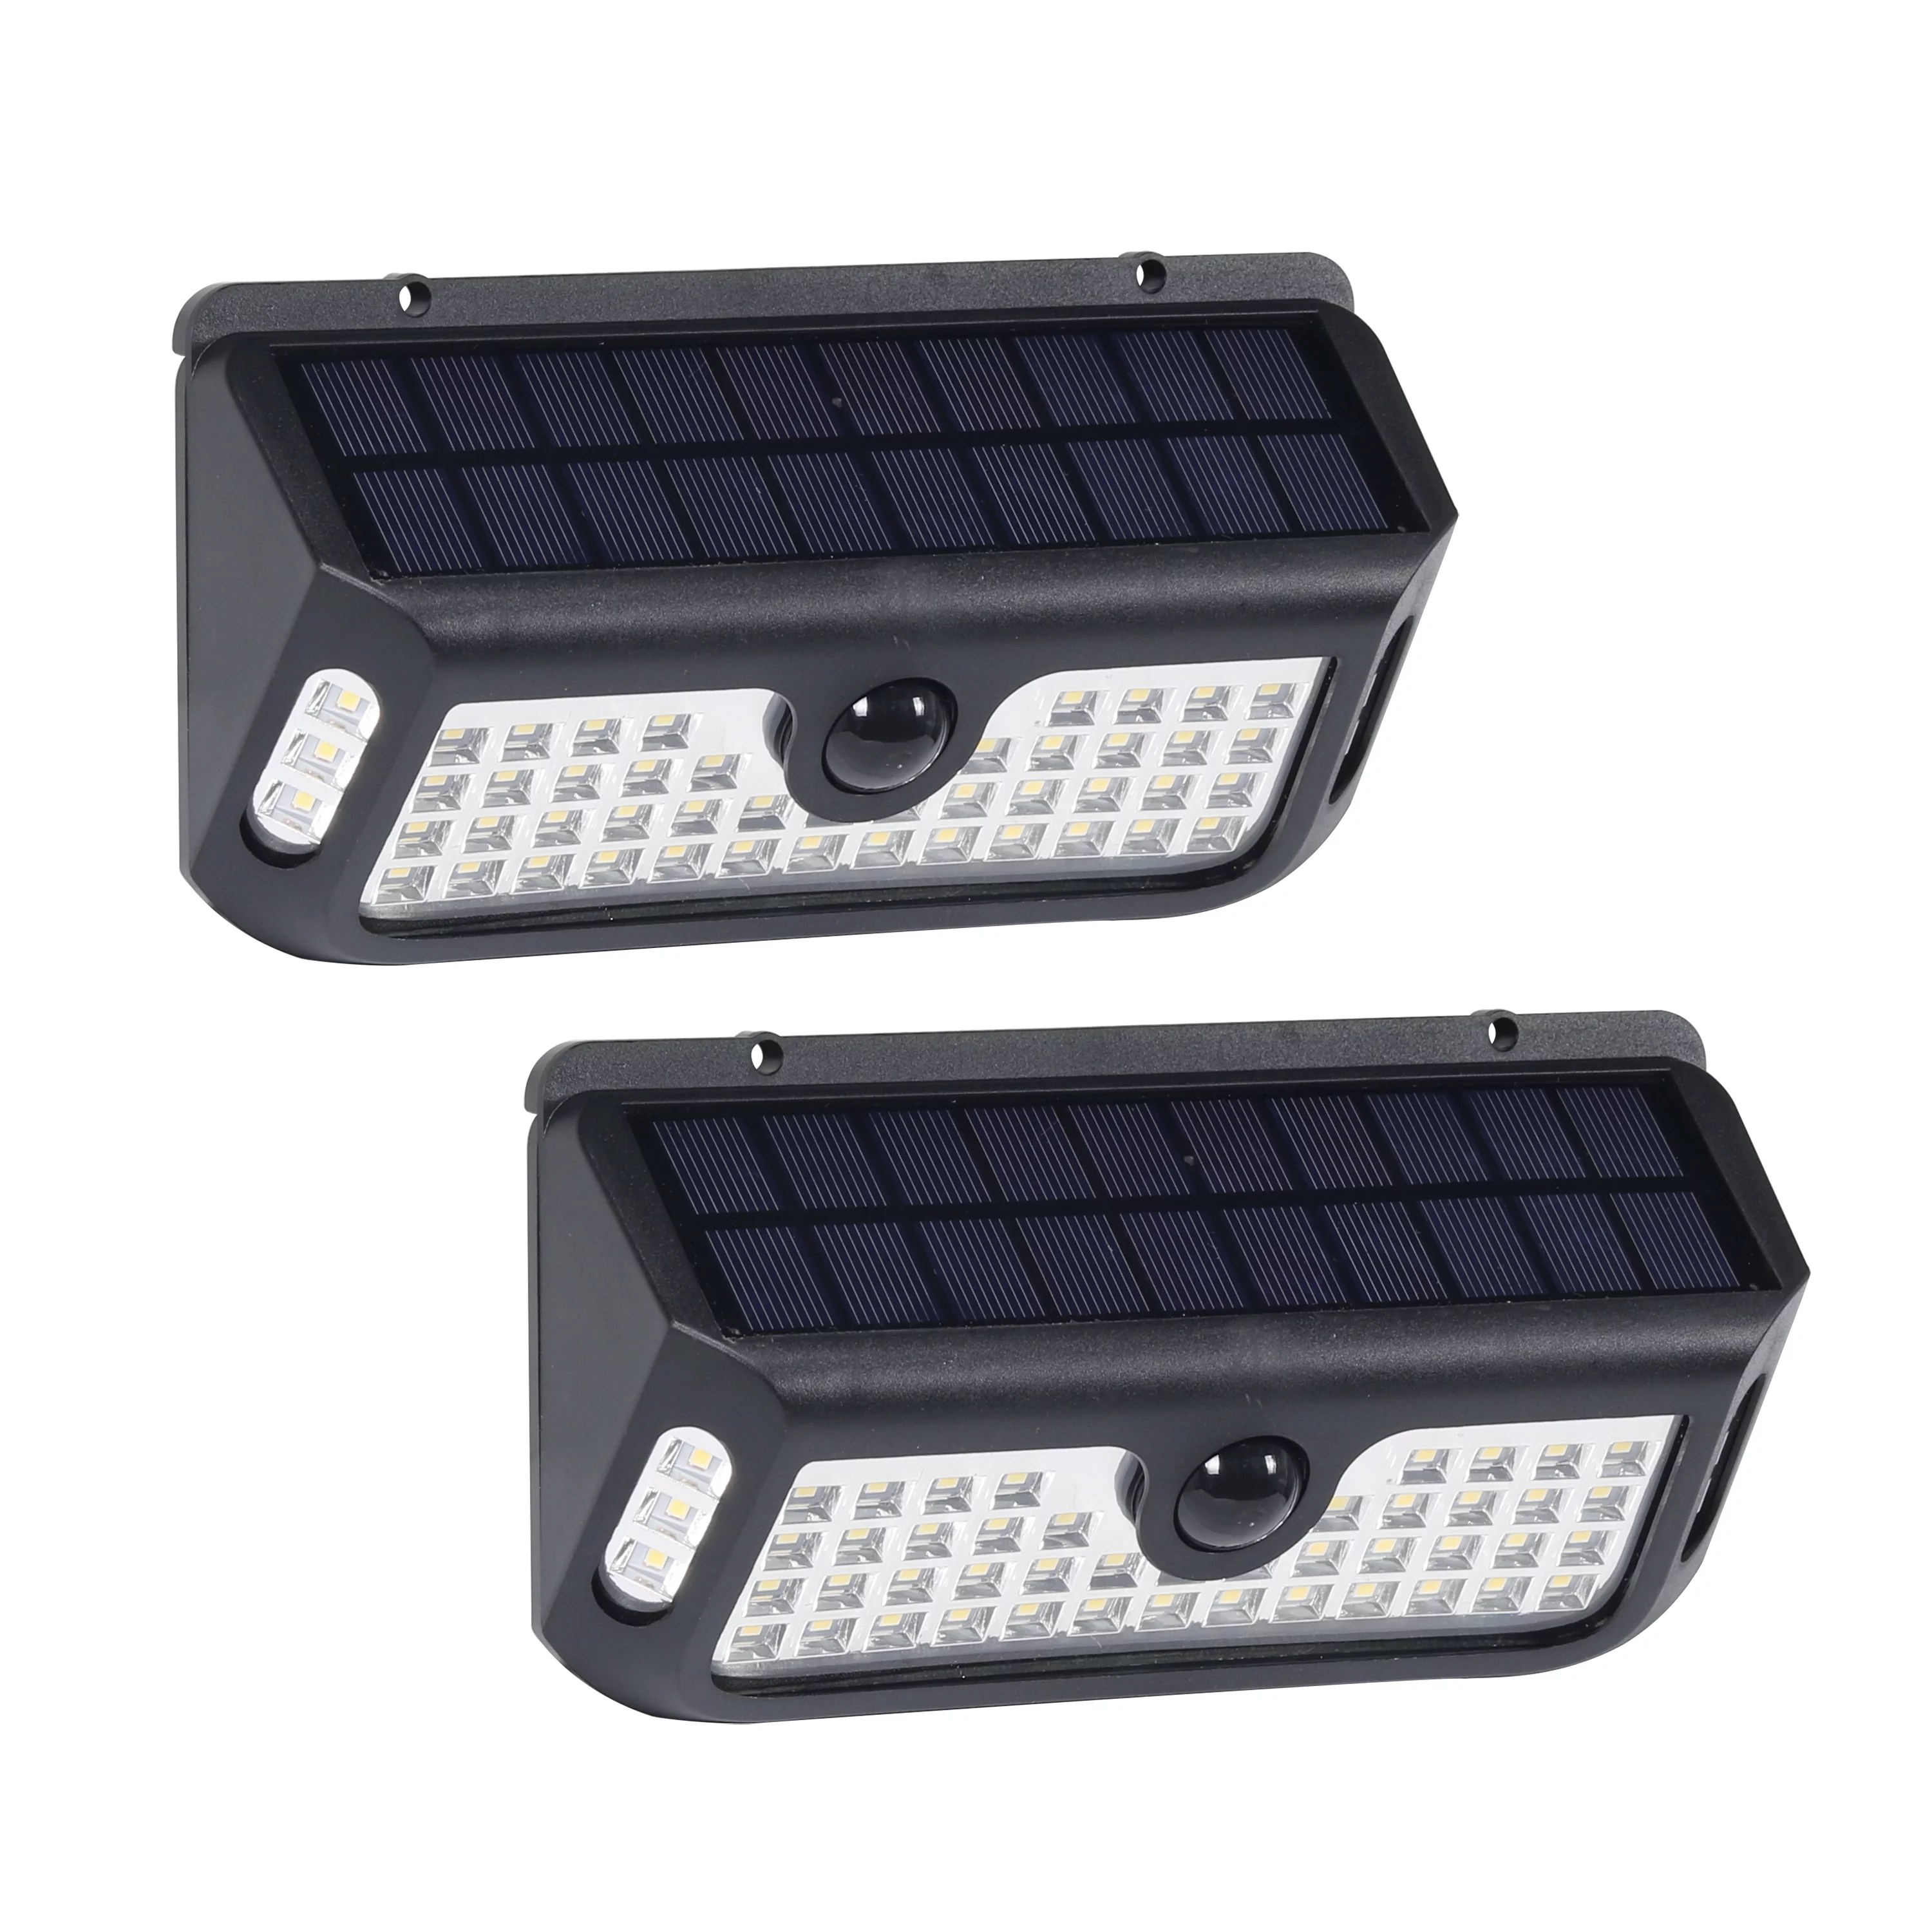 westinghouse 20 1200 lumen linkable solar motion activated lights wireless outdoor wall light add security to your garden fence patio and more 2